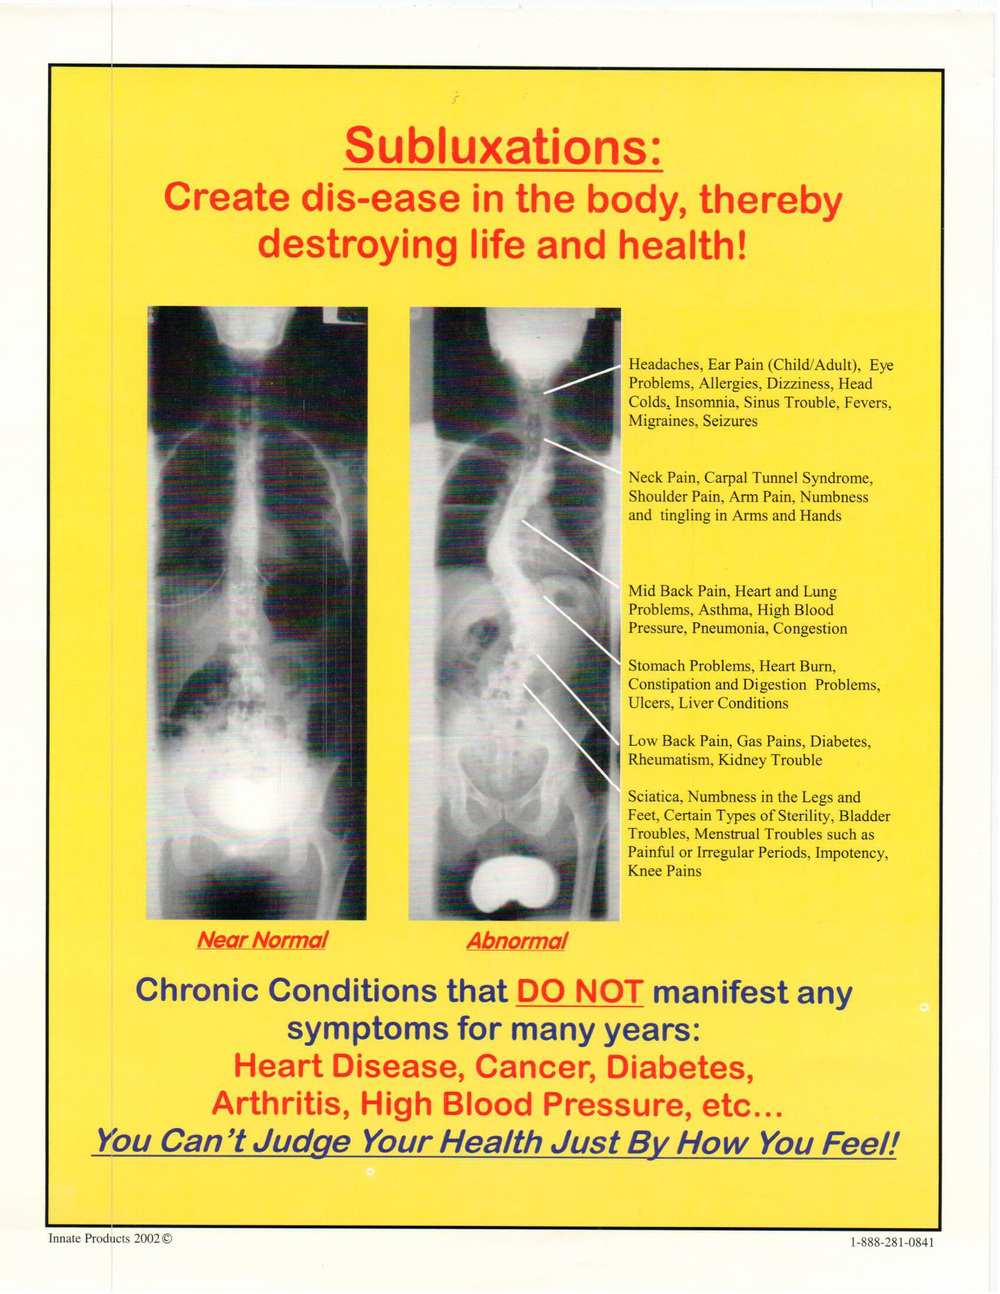 Do you know anybody with Scoliosis?